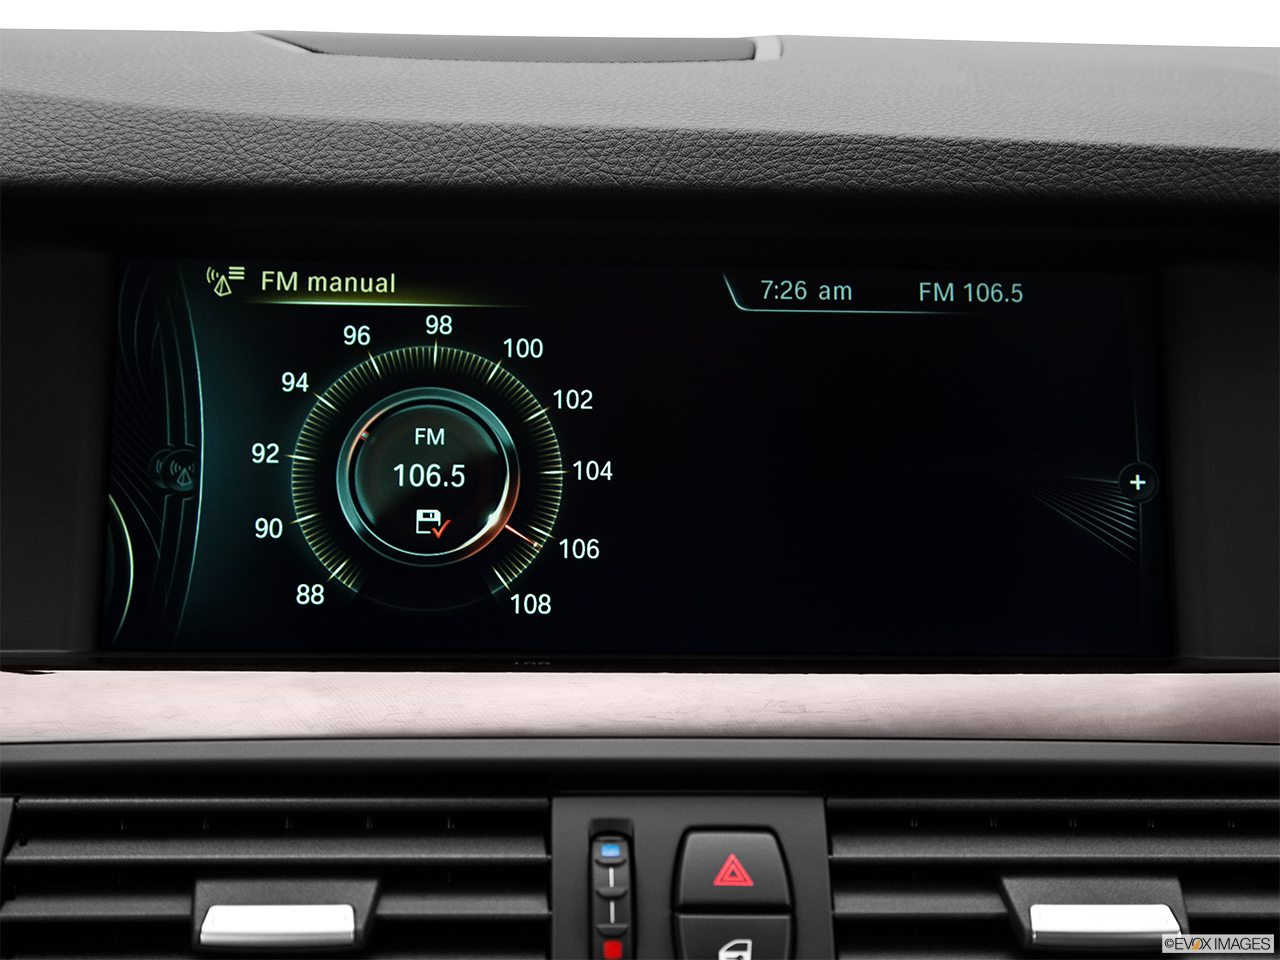 2014 Bmw 5 Series Sedan 535i Rwd Closeup Of Radio Head Unit